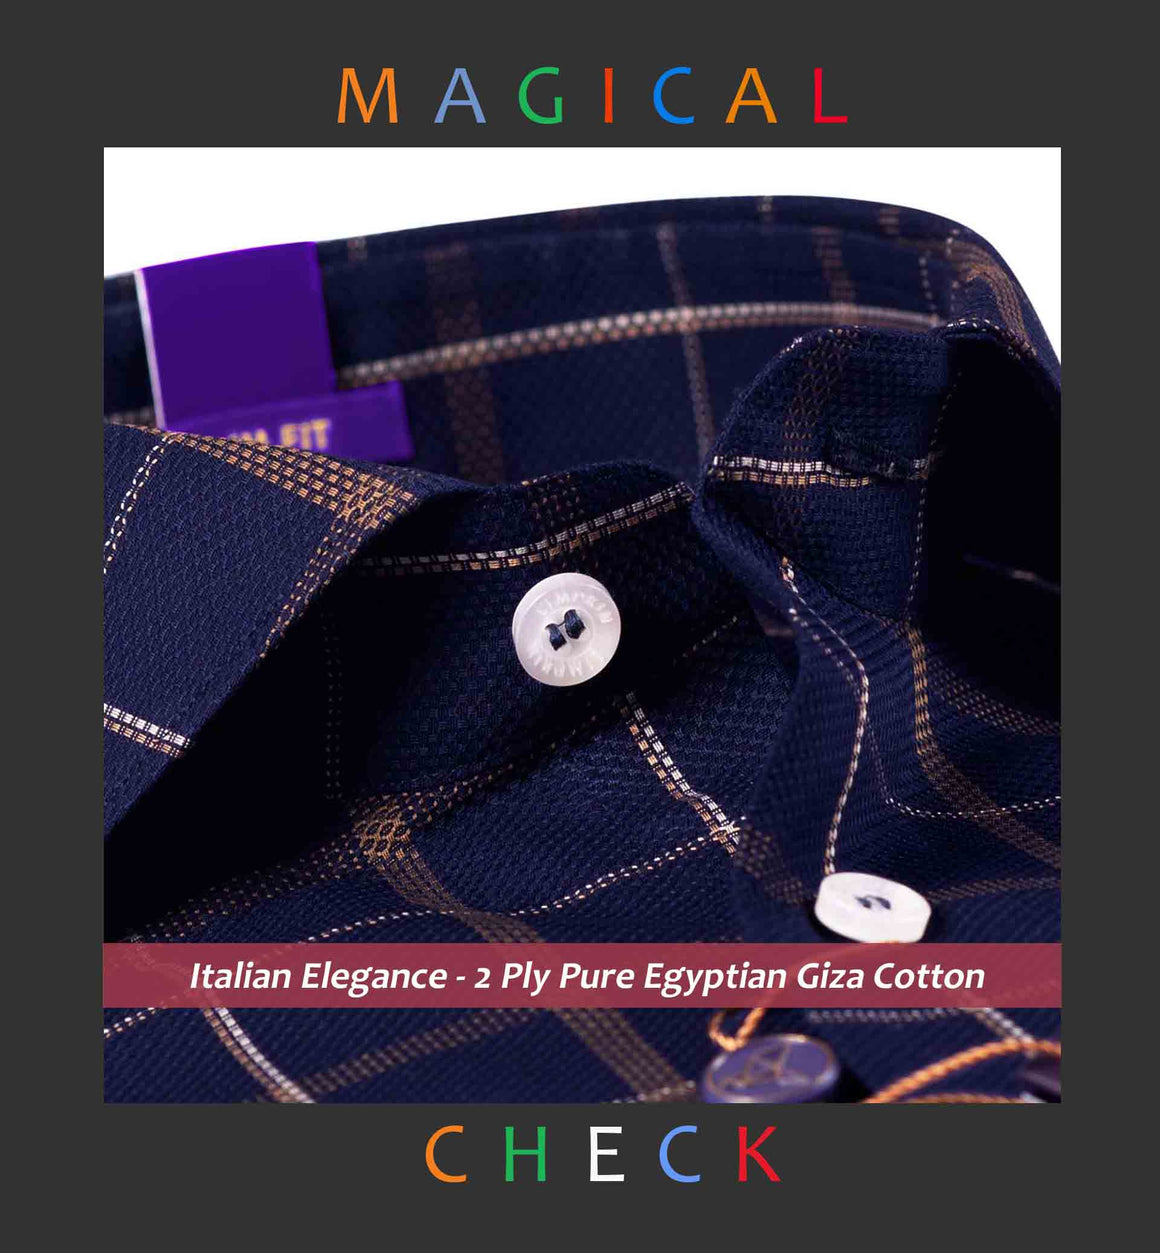 Bakersfield- Dark Navy & Beige Magical Check- 2 Ply Pure Egyptian Giza Cotton